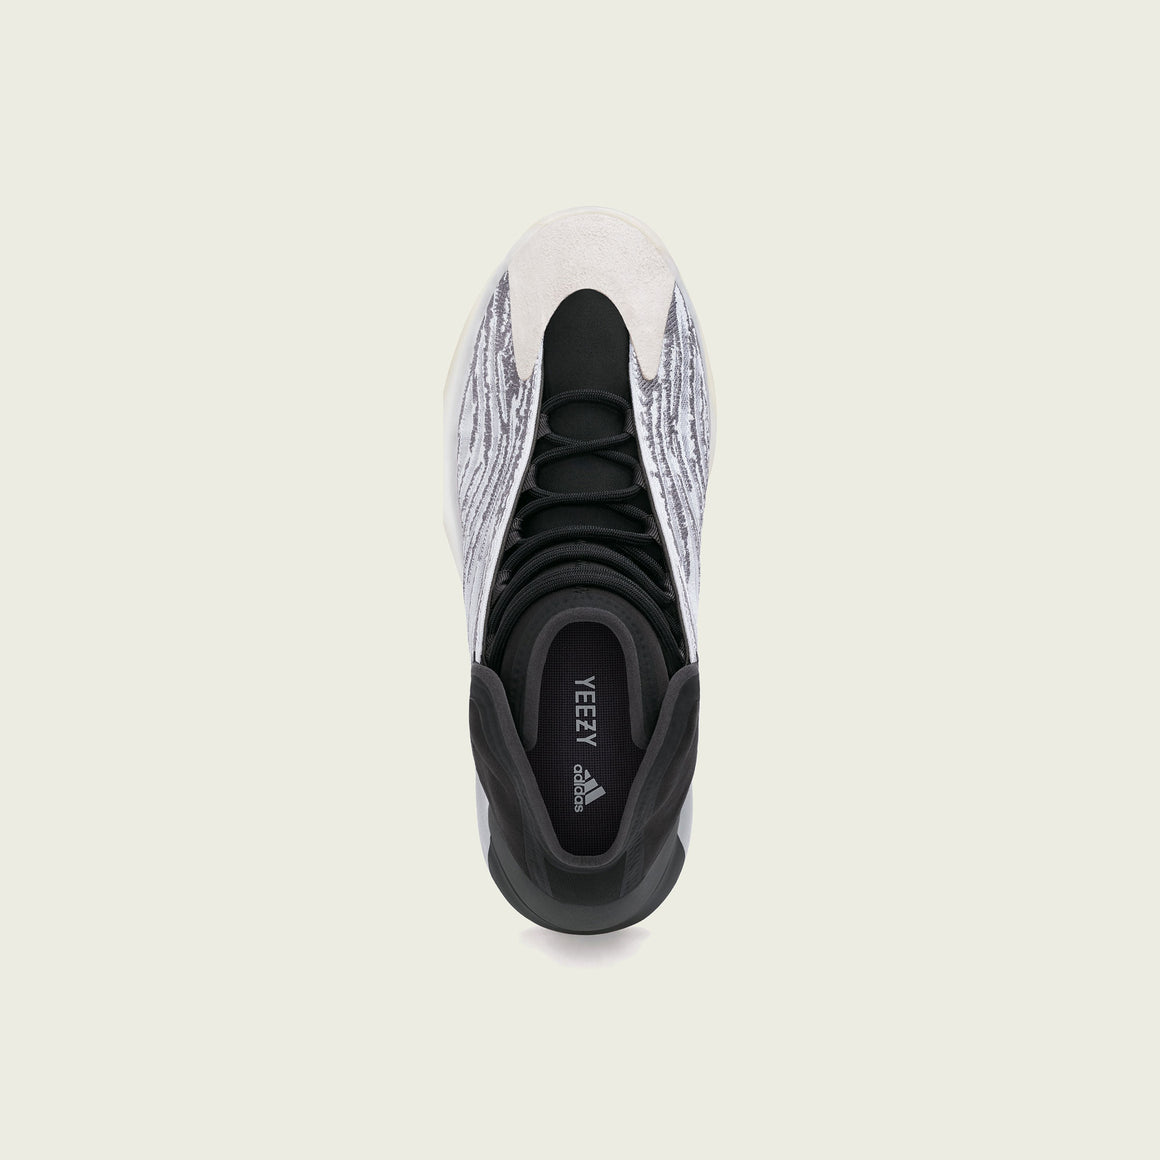 adidas - YEEZY QNTM - QNTM - Up There